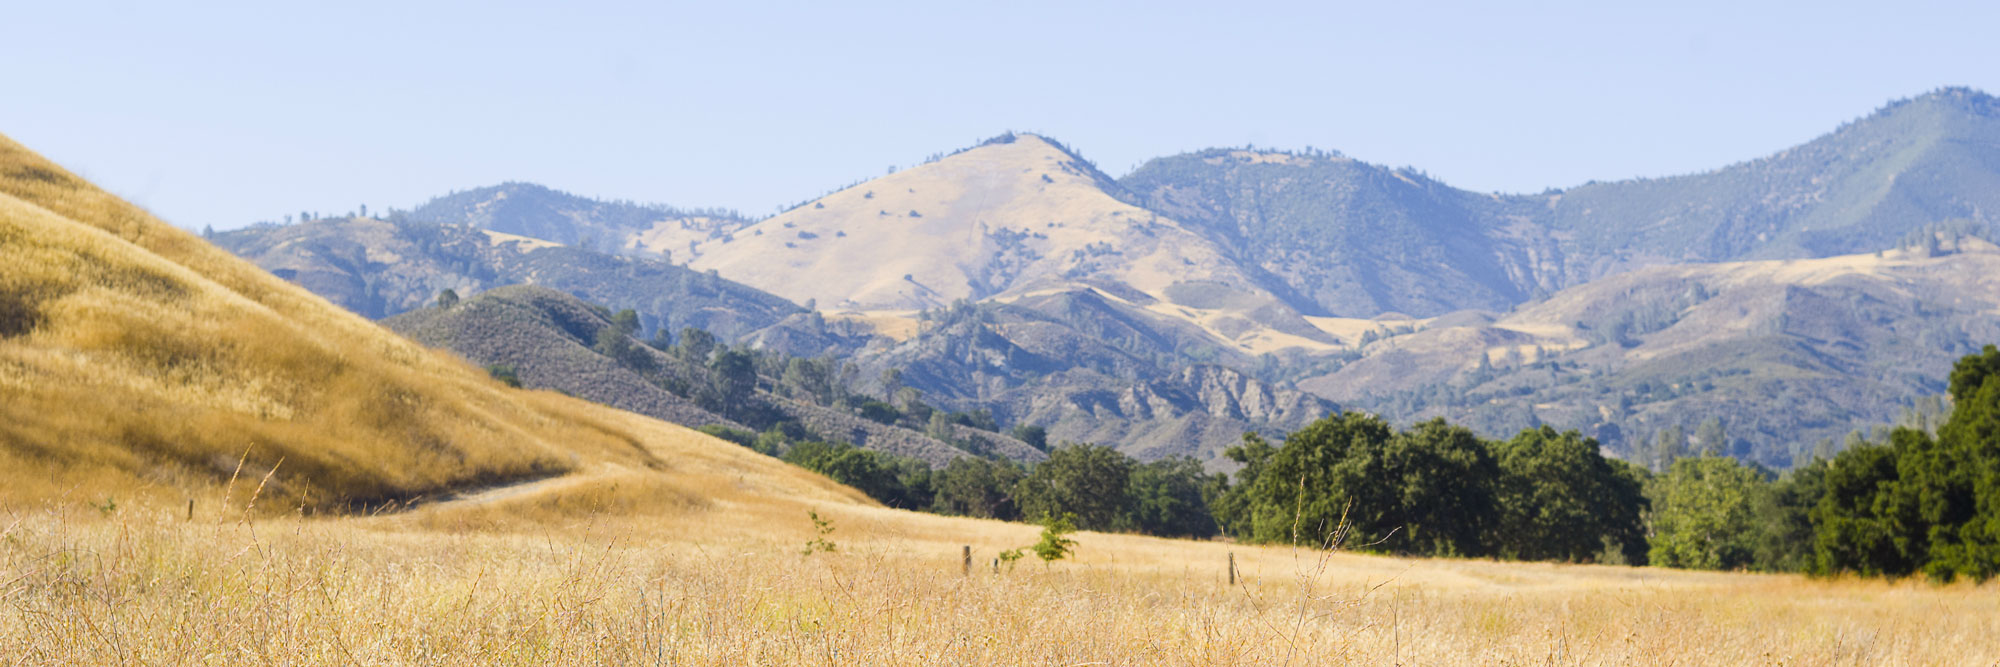 Photo of California landscape with hills